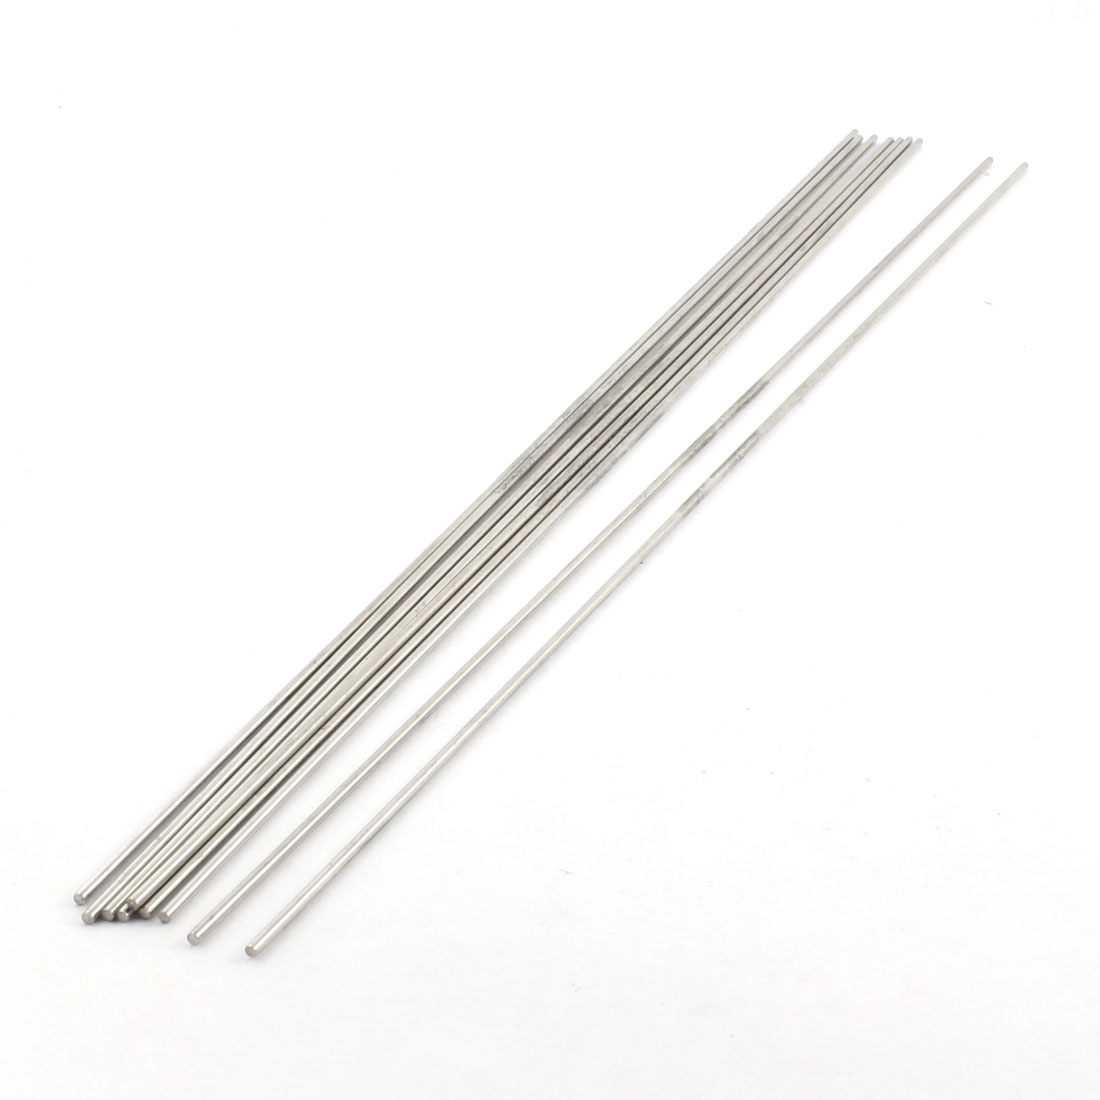 9Pcs 2mm Dia 350mm Length Stainless Steel Round Rod Shaft for RC Toy Car